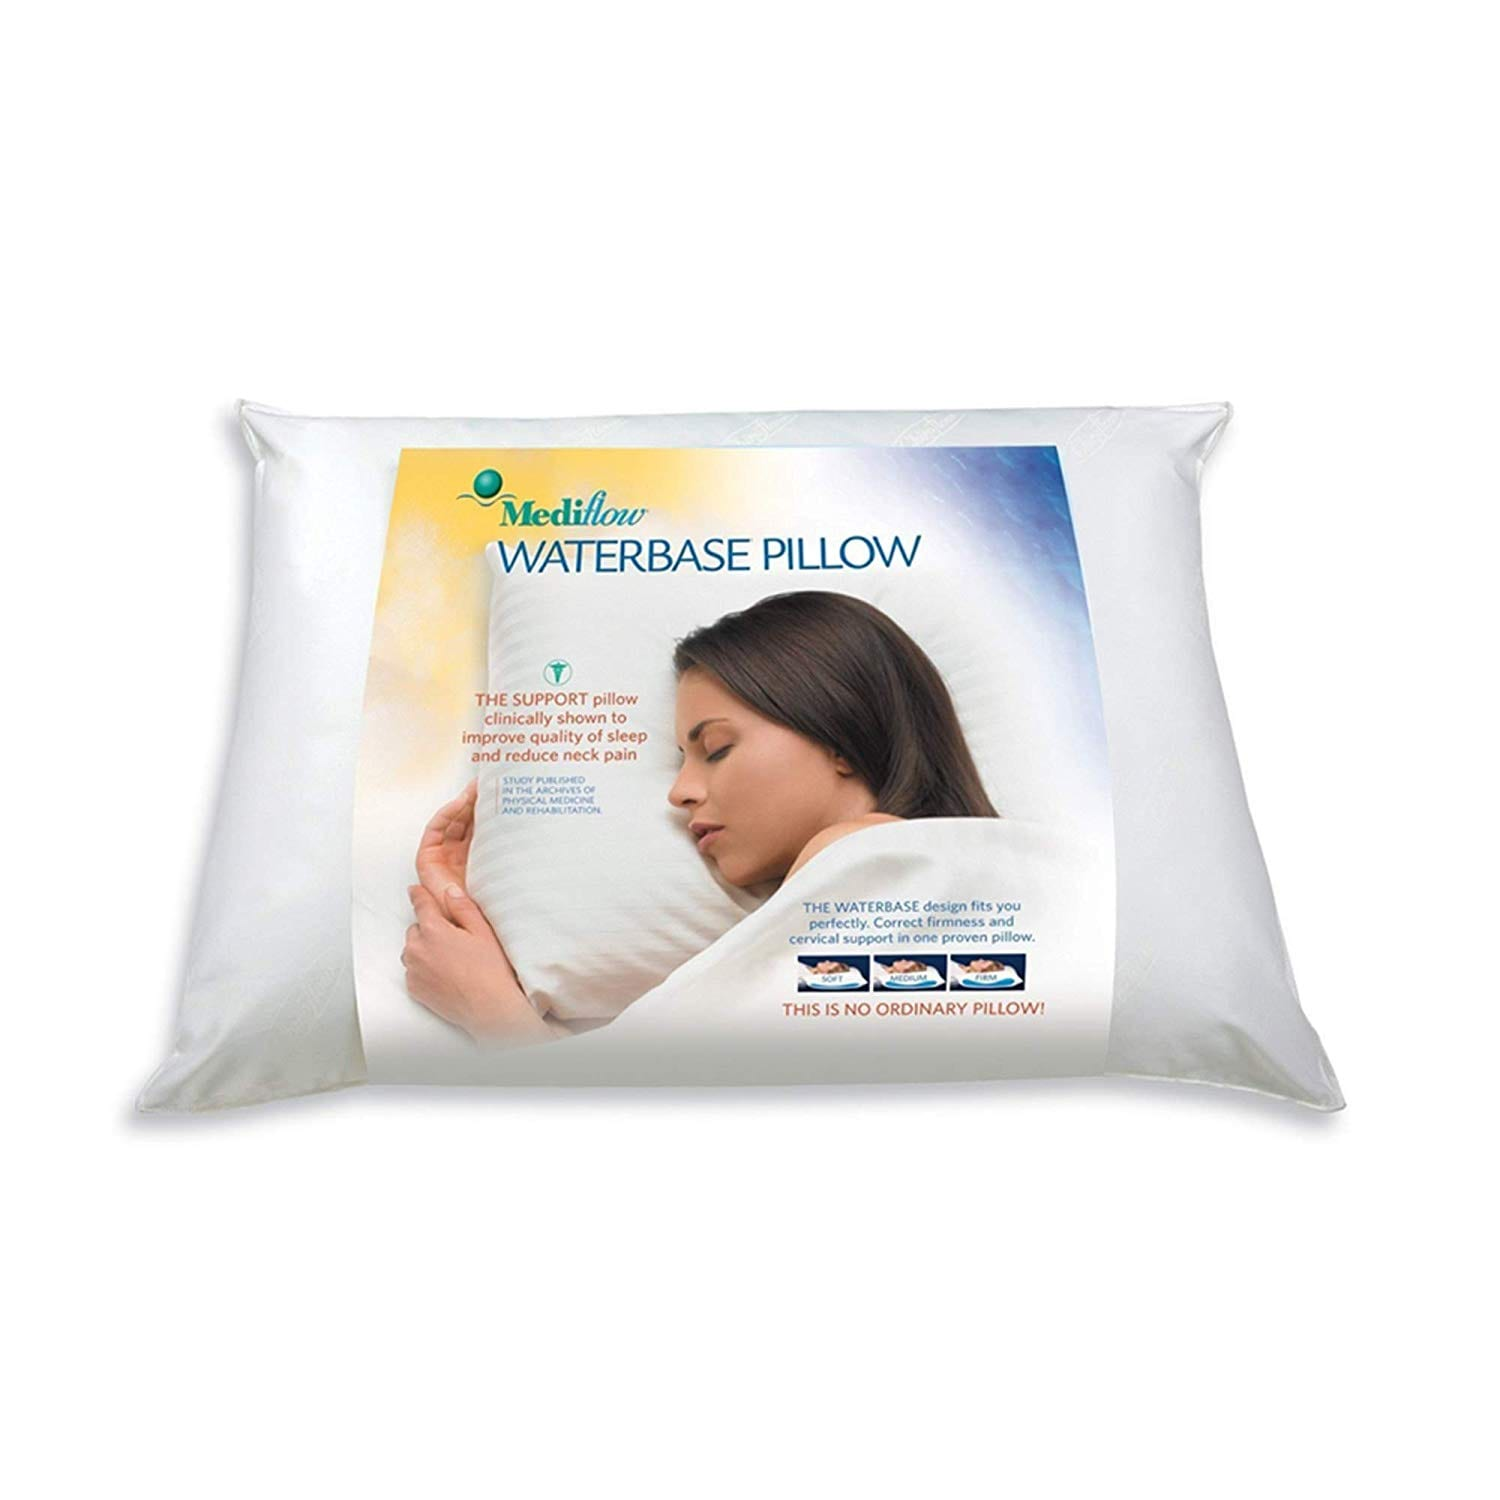 Mediflow Best Cervical Support Pillow Review by www.dailysleep.org